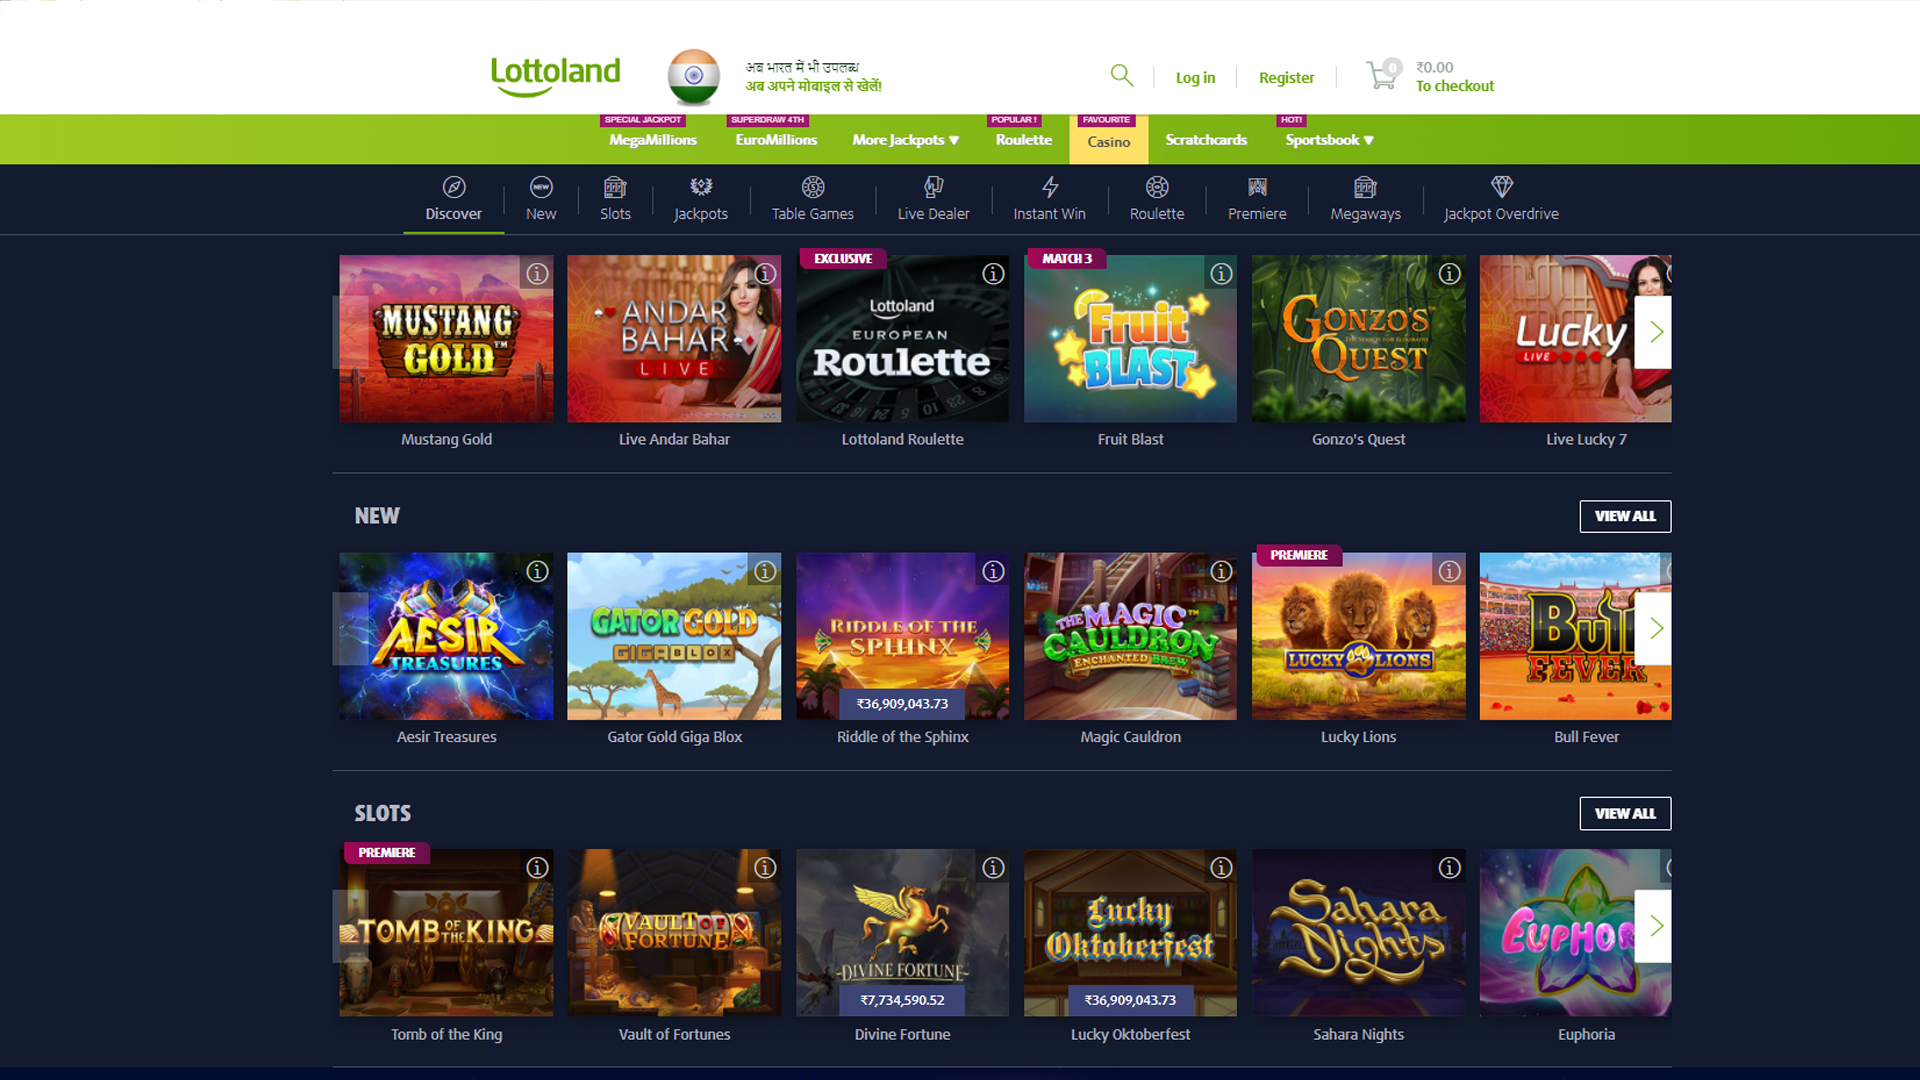 Casino players can find different slots, table games and jackpots in the special section.